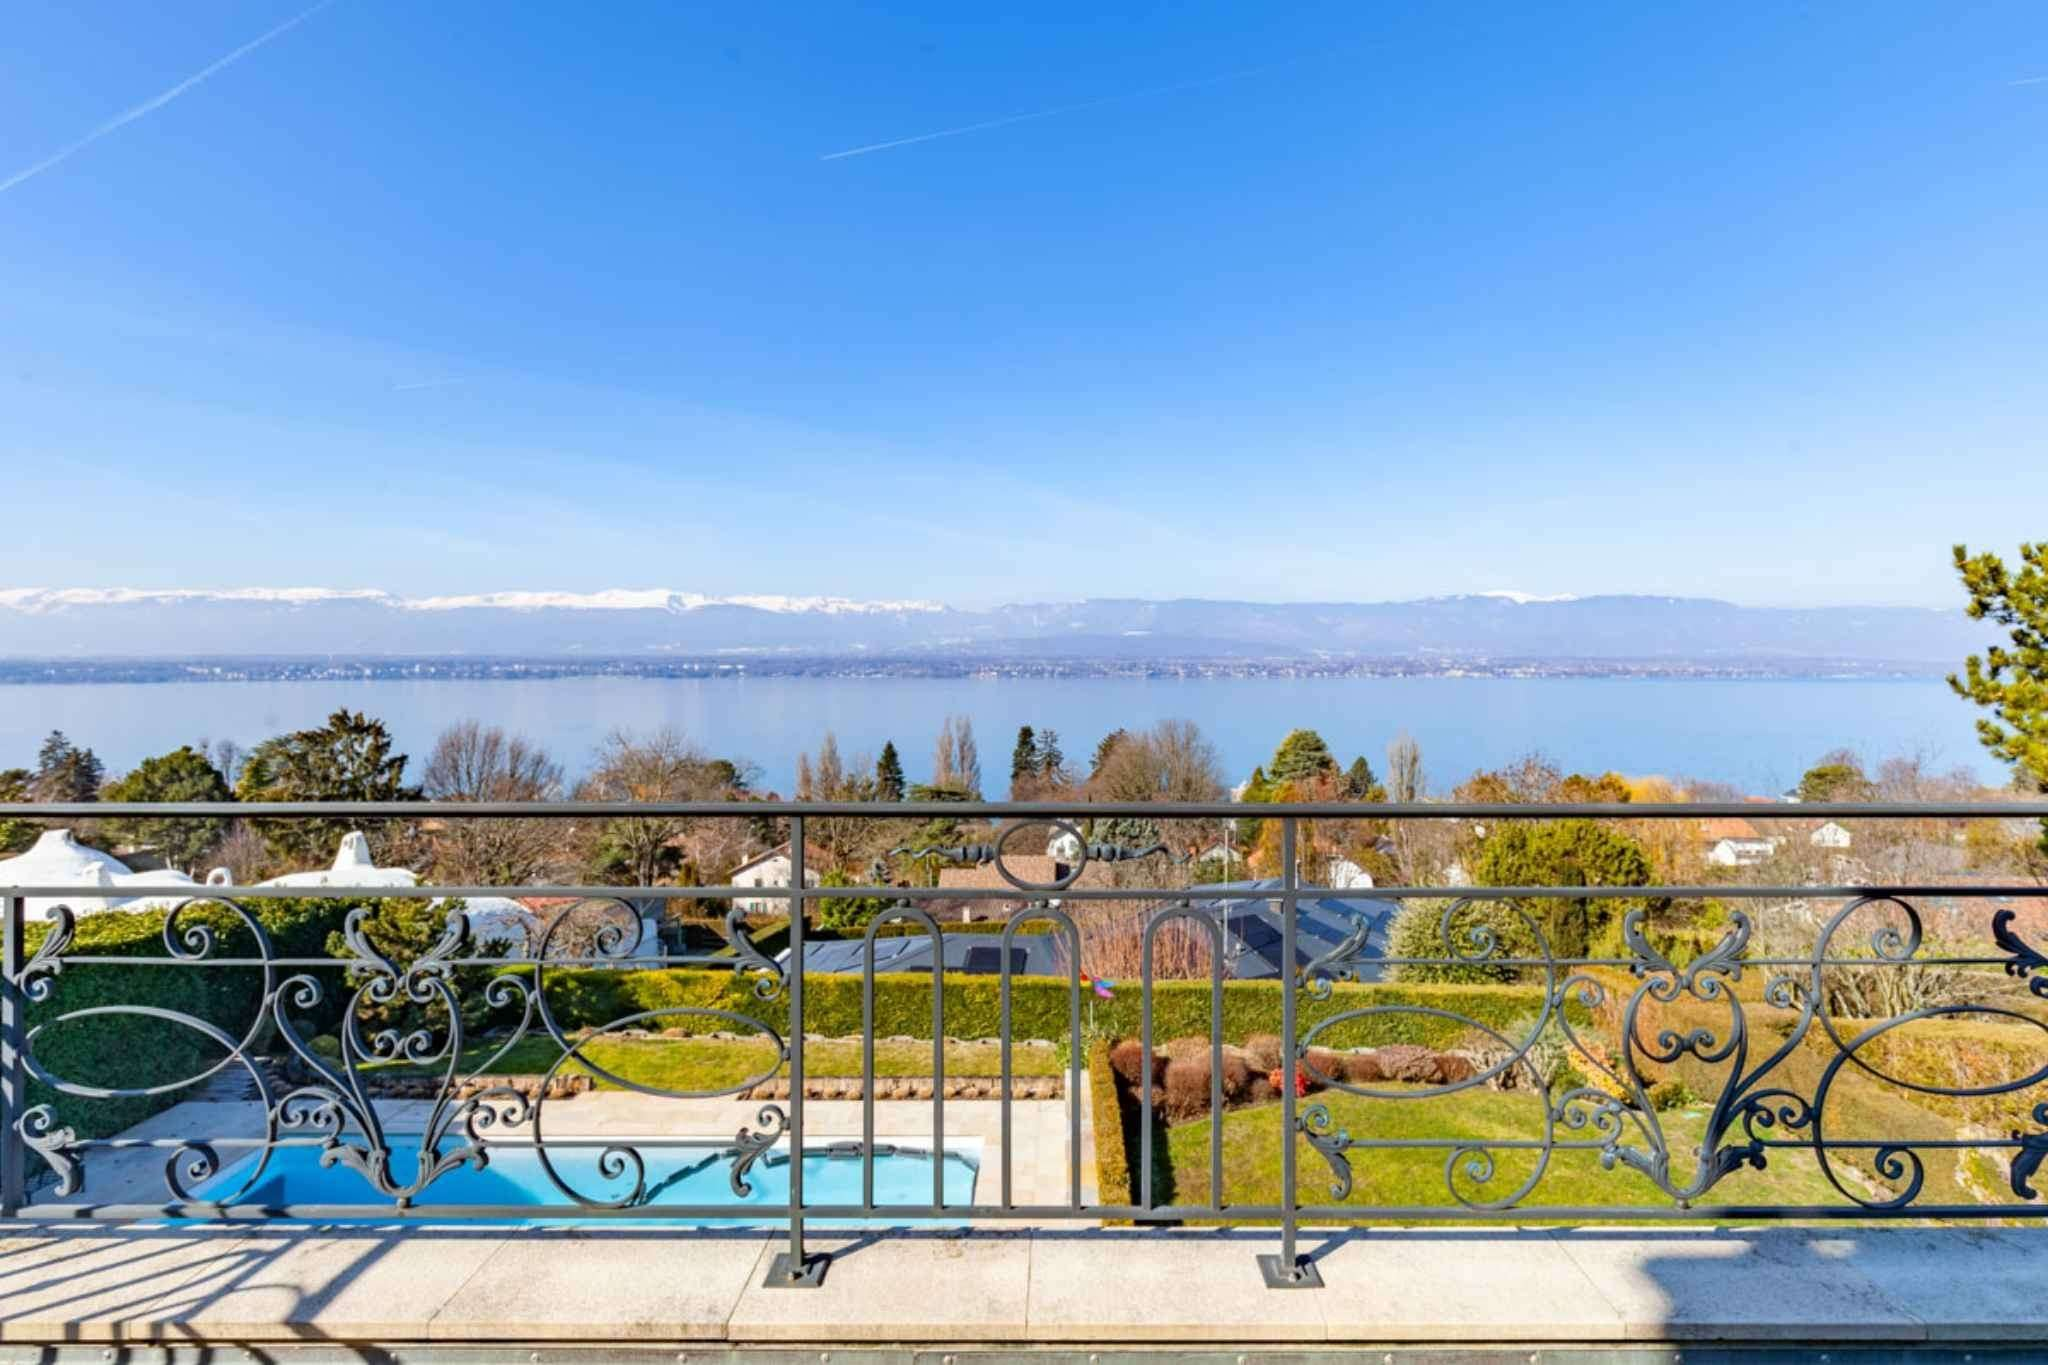 Stunning view of Lake Léman and Jura mountain range